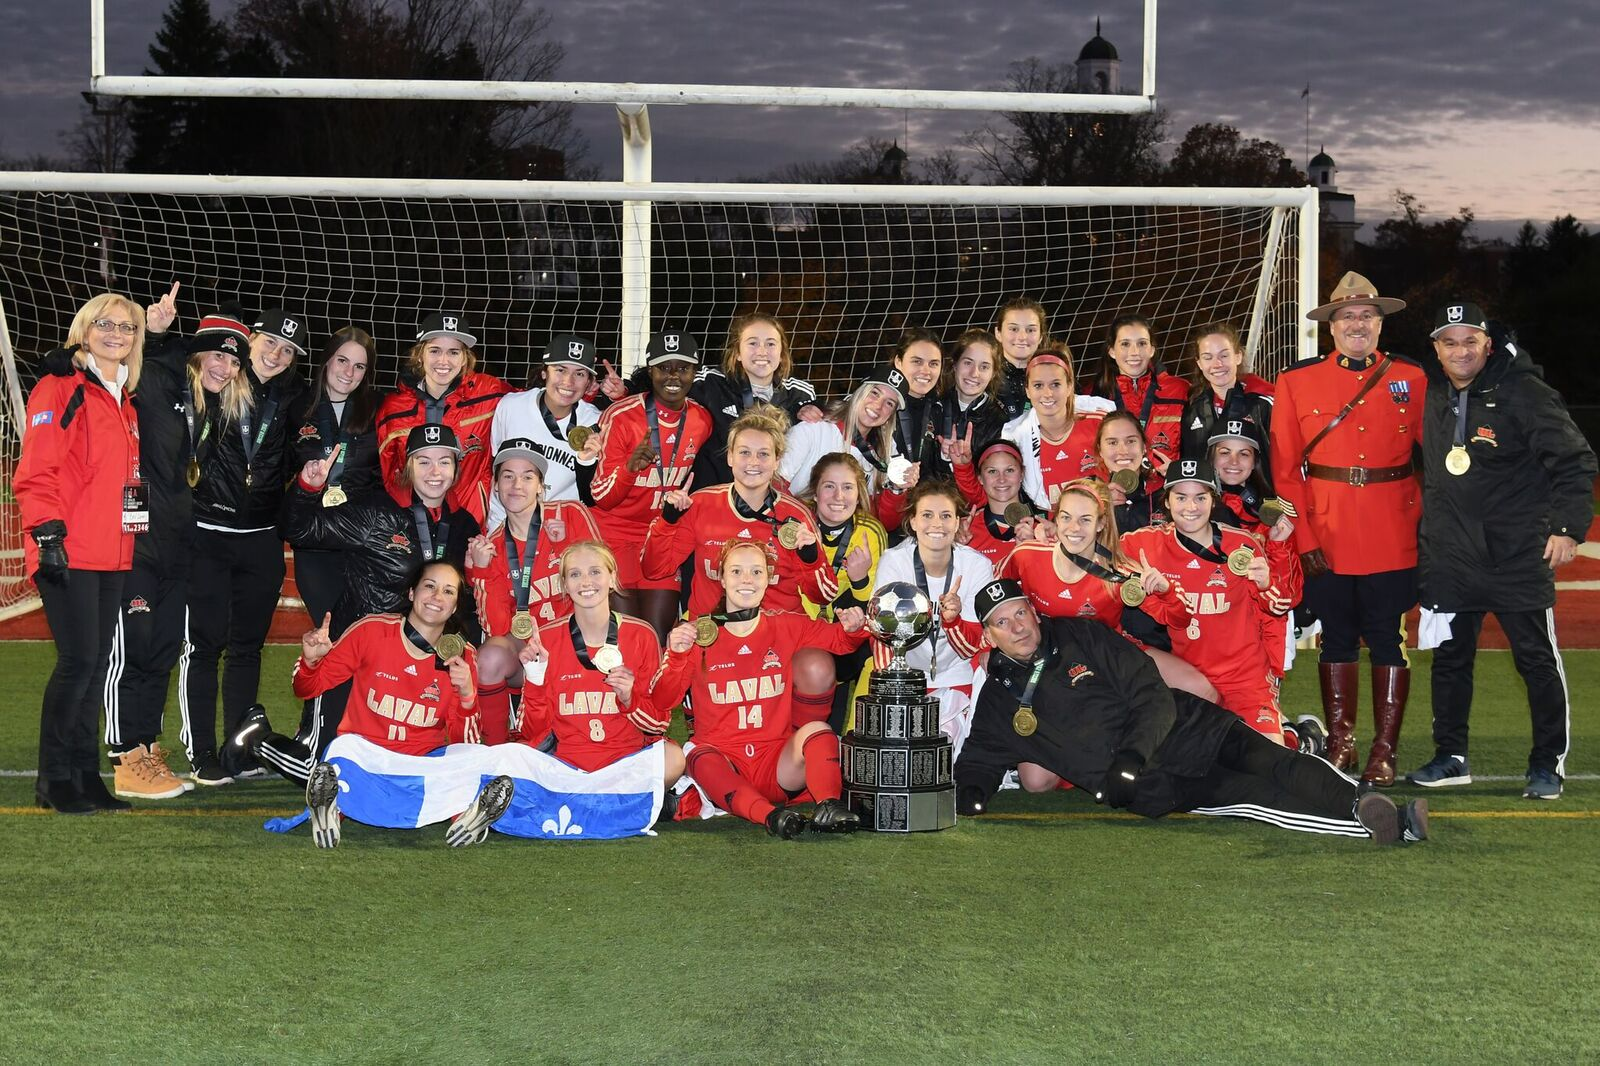 FINAL 2016 women's soccer championship: Rouge et Or crowned women's soccer champs after 2-1 win over UBC